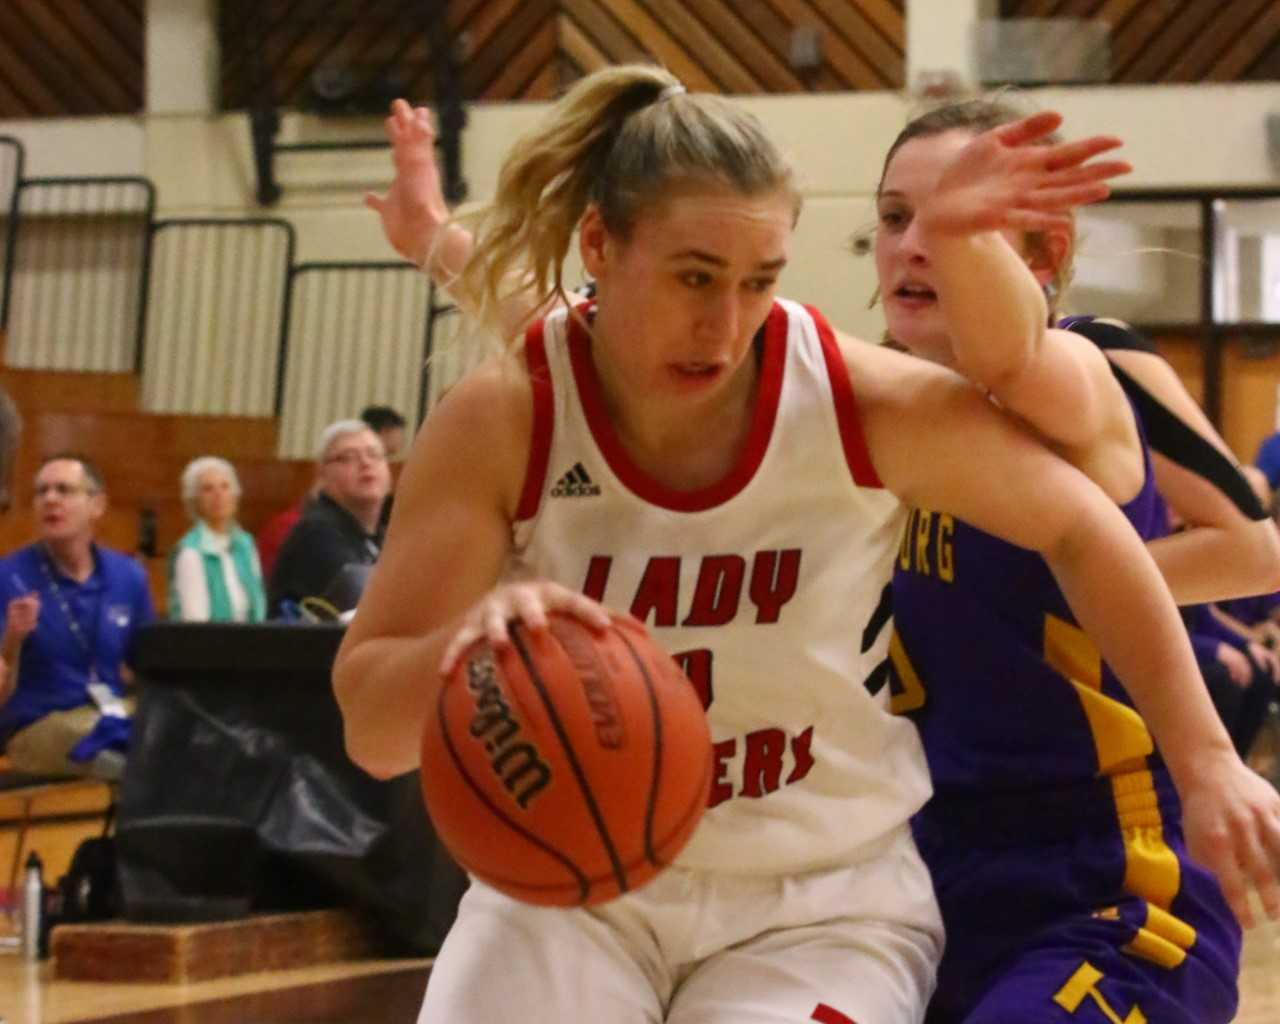 Clatskanie's Shelby Blodgett had 18 points and 15 rebounds Thursday against Harrisburg. (NW Sports Photography)